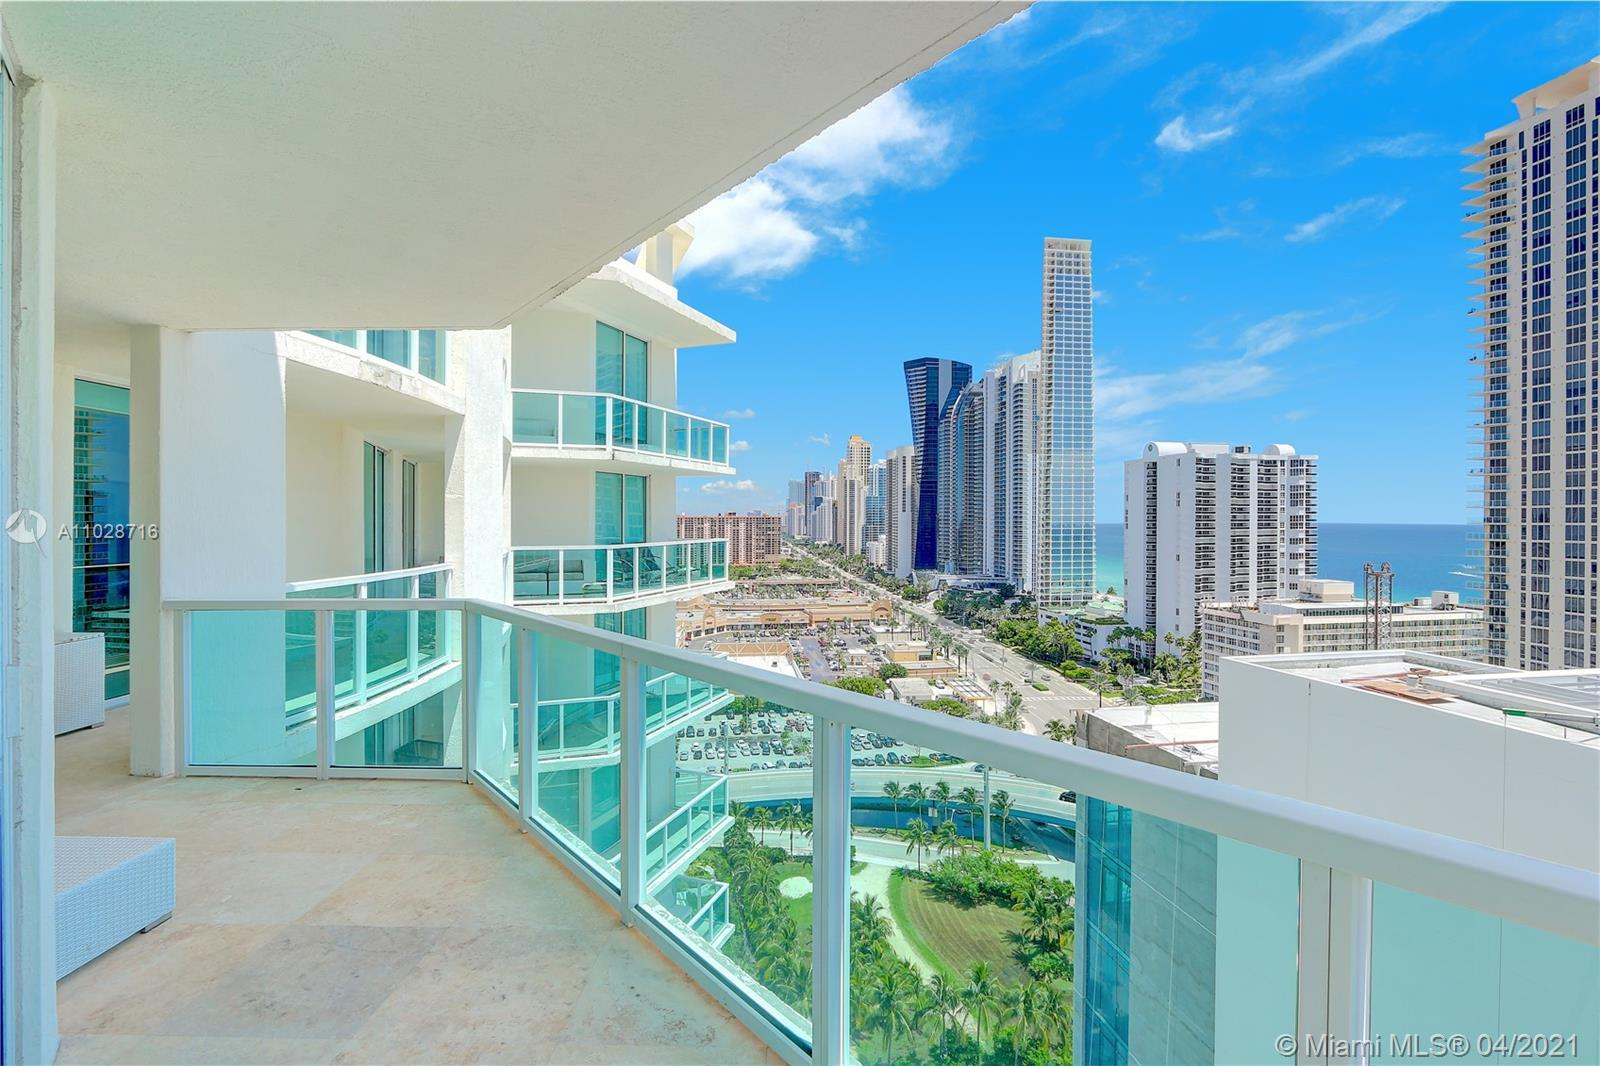 Spectacular contemporary 4BR 4.5BA upper corner Penthouse unit with an additional 1,100 Sq Ft 1BR 1B